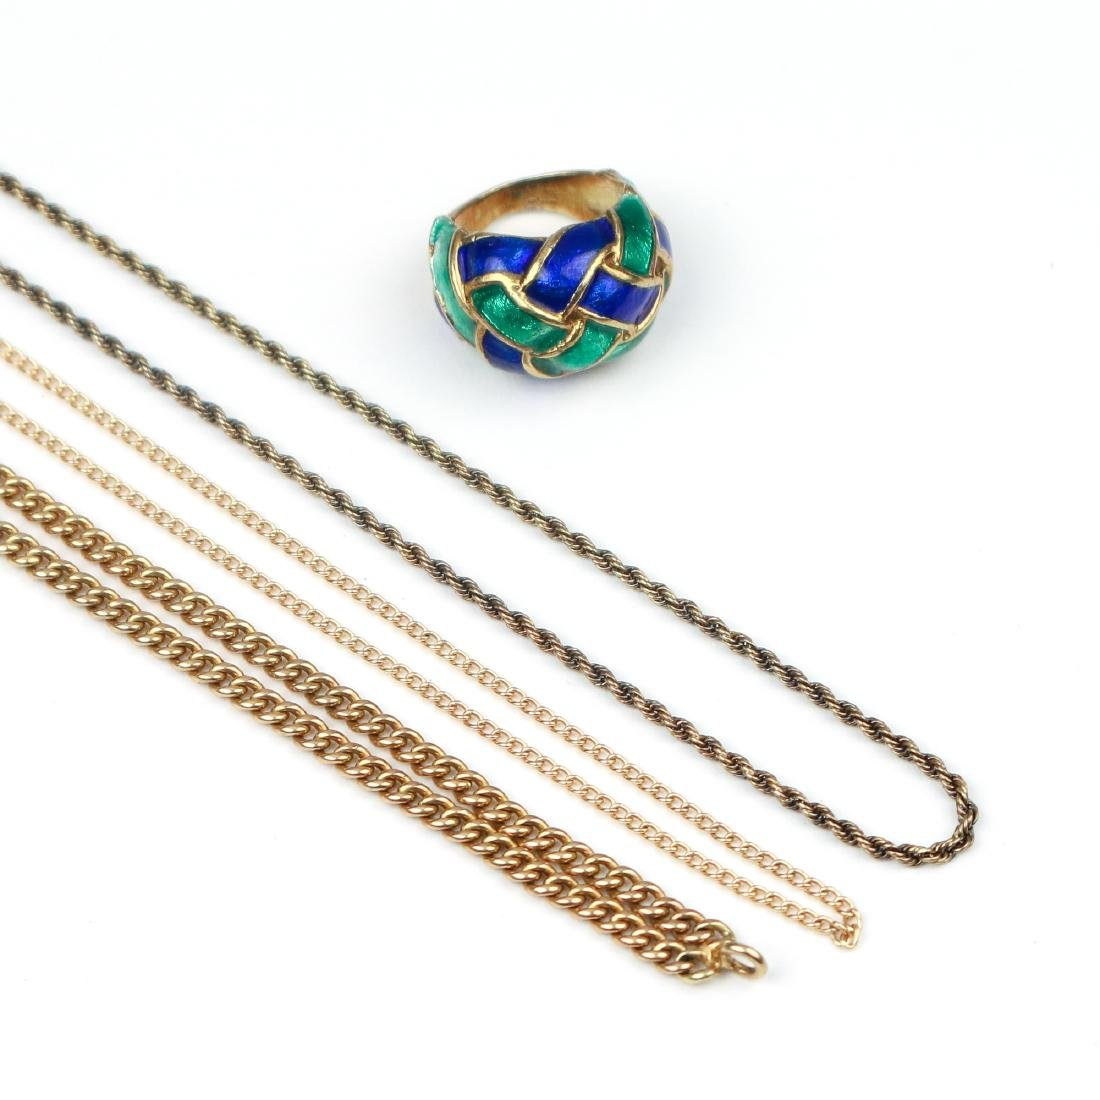 (4pc) 14k GOLD CHAINS & OTHER